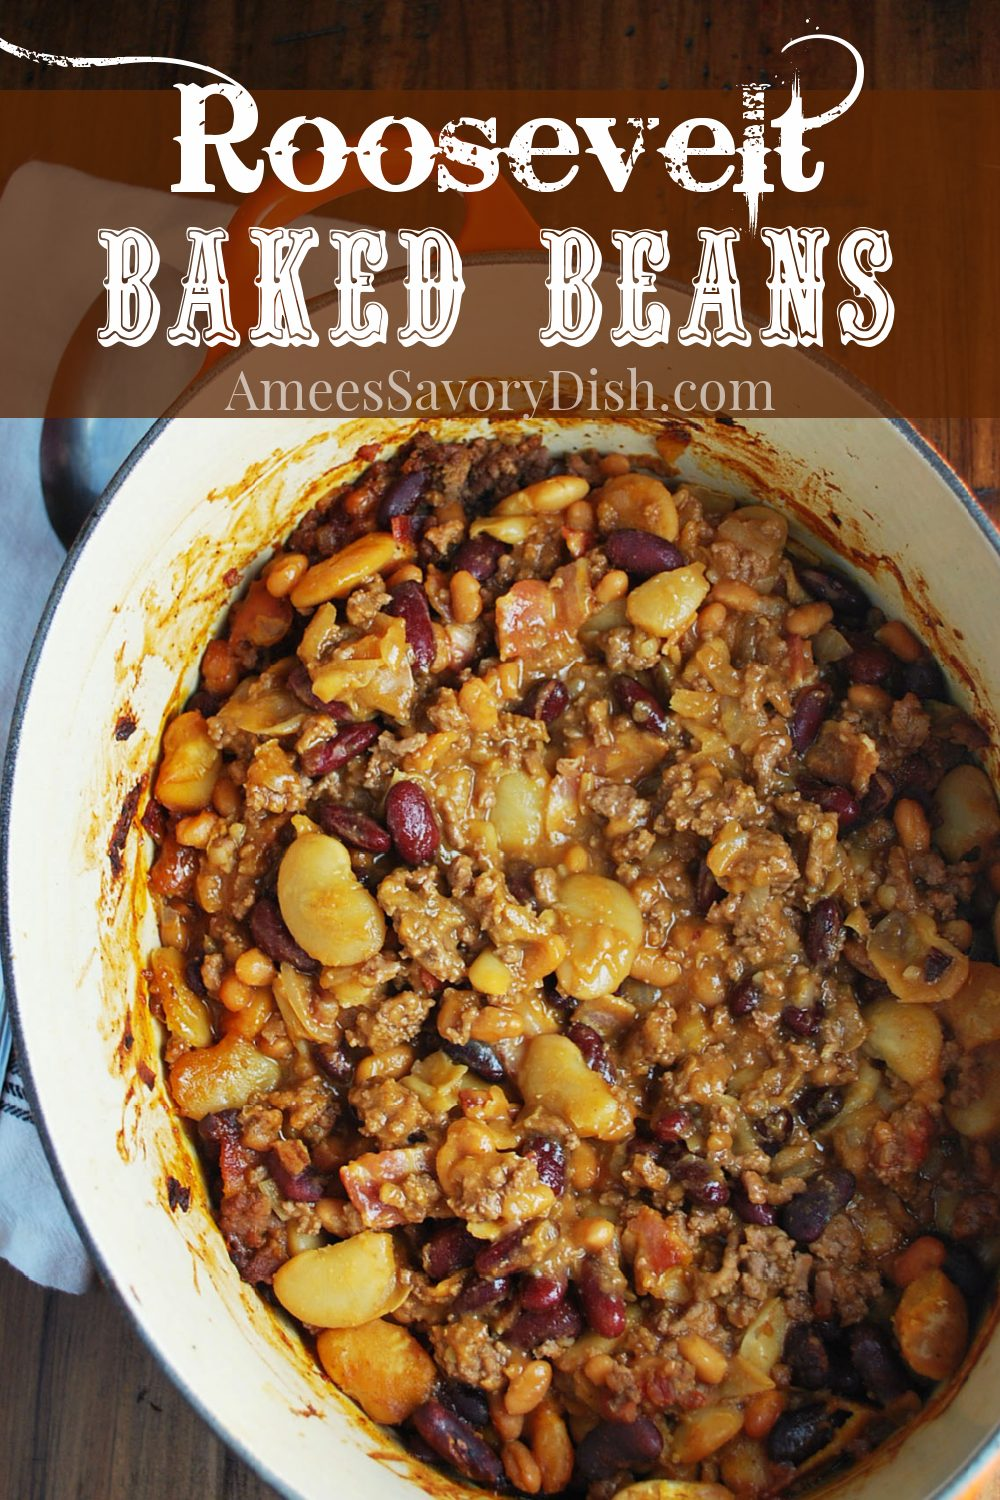 These baked beans with ground beef and bacon are seriously the best baked beans you'll ever eat!! It's an adapted version of the Roosevelt Baked Bean recipe from Yellowstone National Park's Old West Dinner Cookout. It's seriously the last baked bean casserole recipe you'll ever need. #bakedbeans #rooseveltbakedbeans via @Ameessavorydish